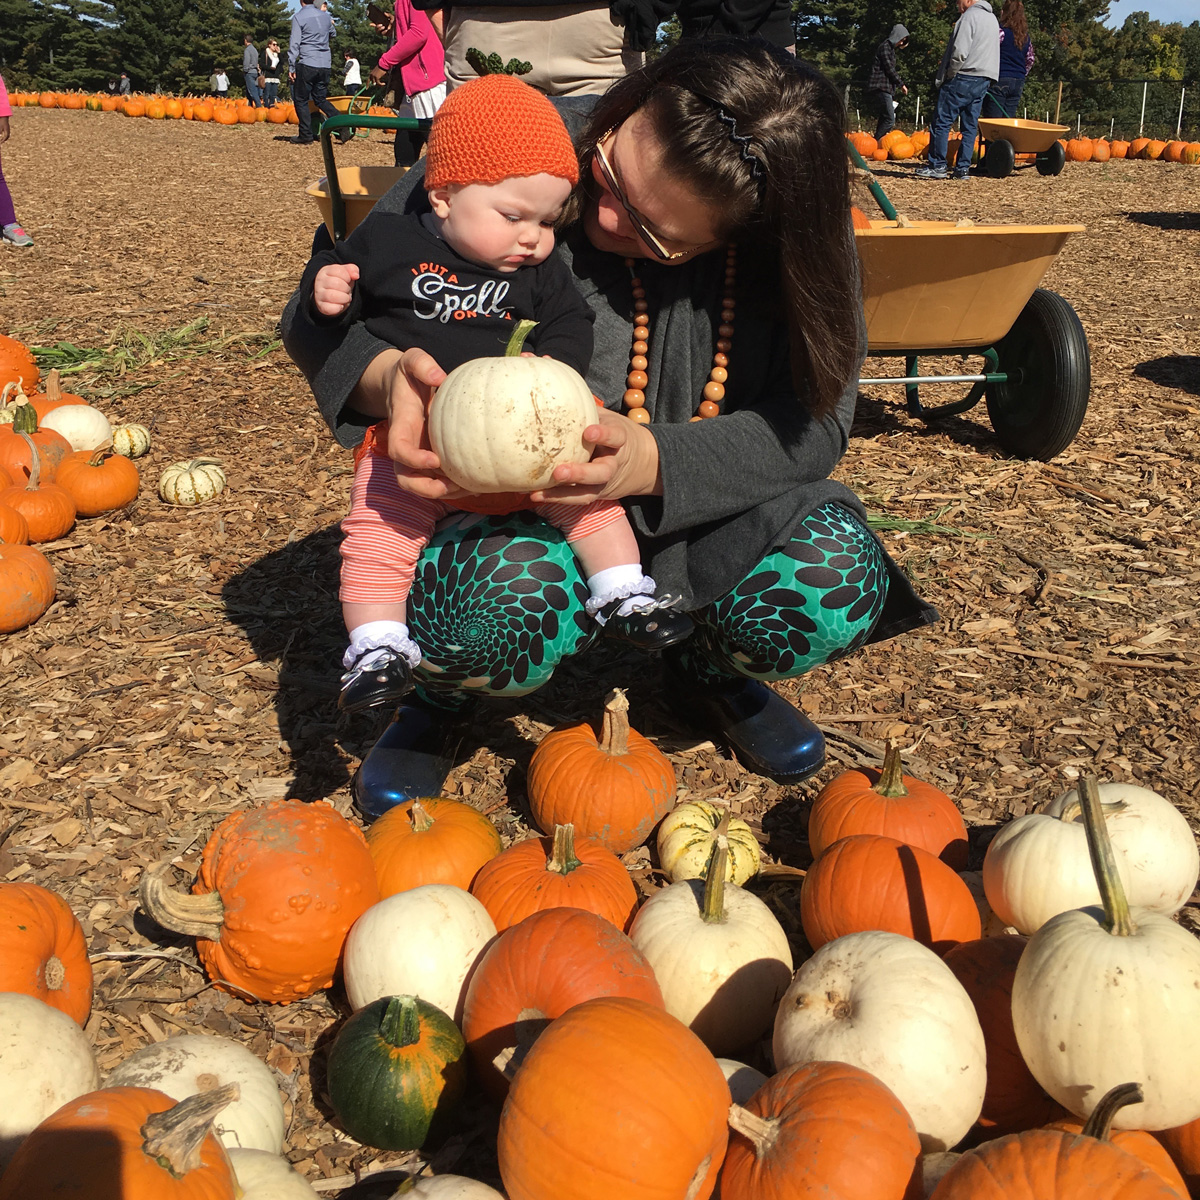 Picking a white pumpkin on baby's first trip to the pumpkin patch